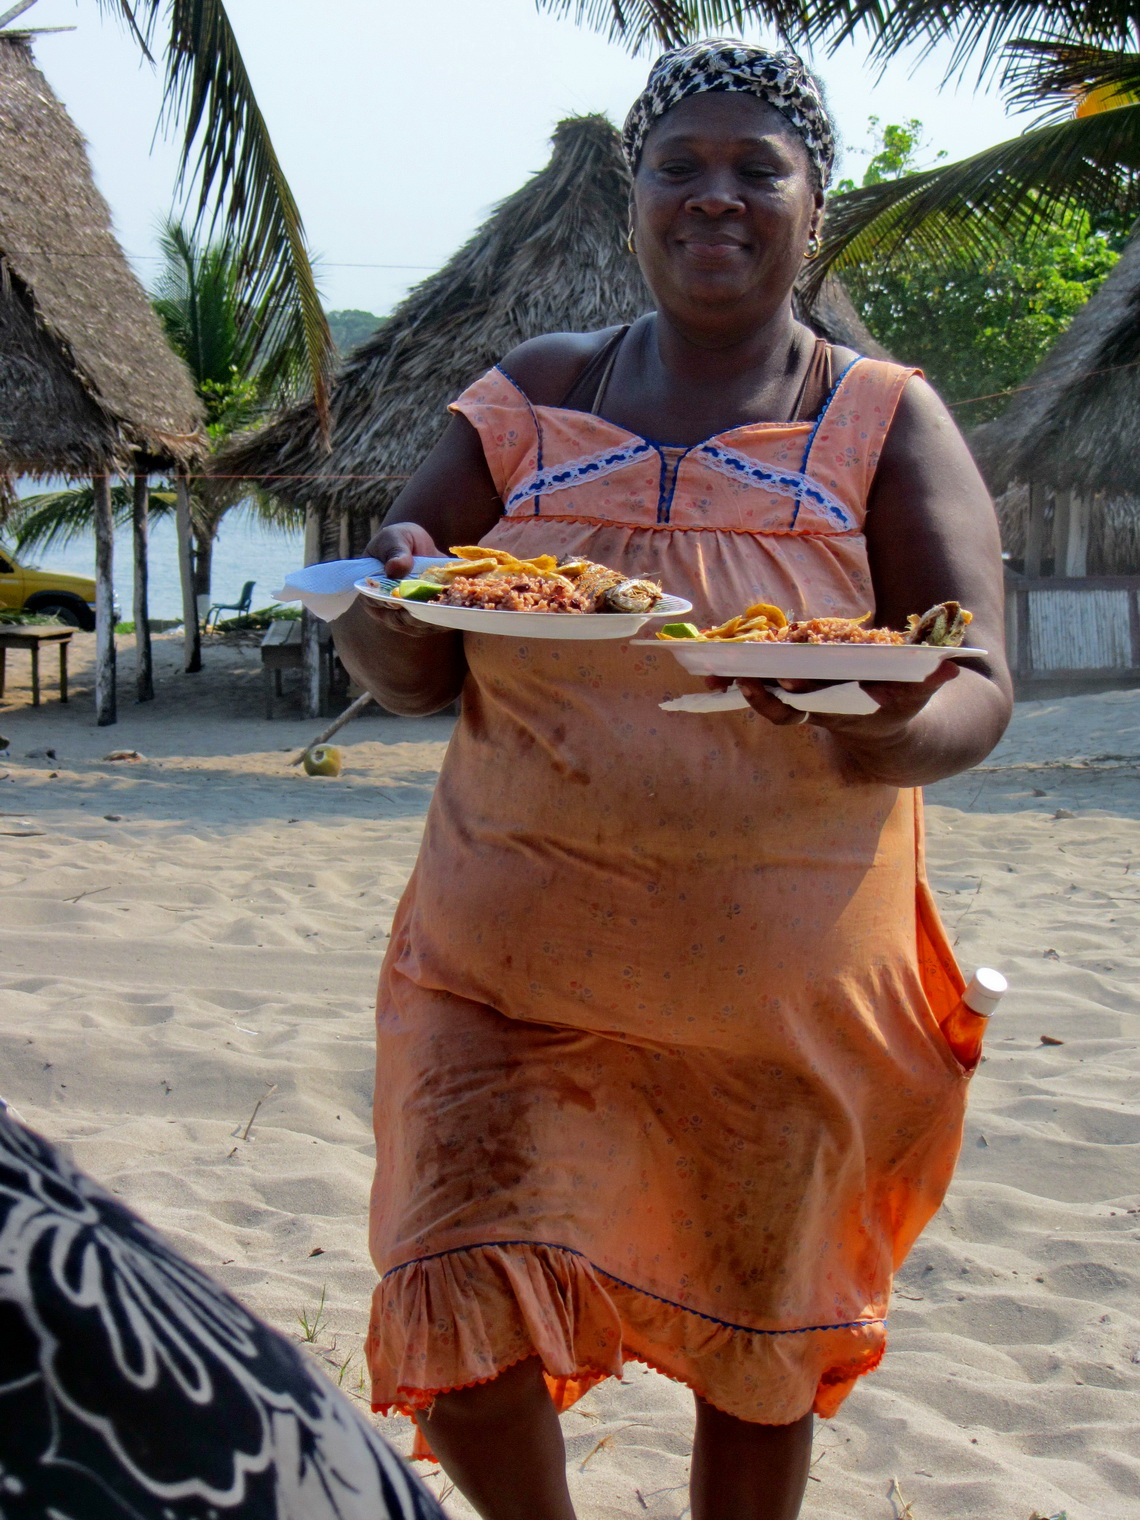 We were hungry like wolves when we came to Miami - African Lady serving us delicious food